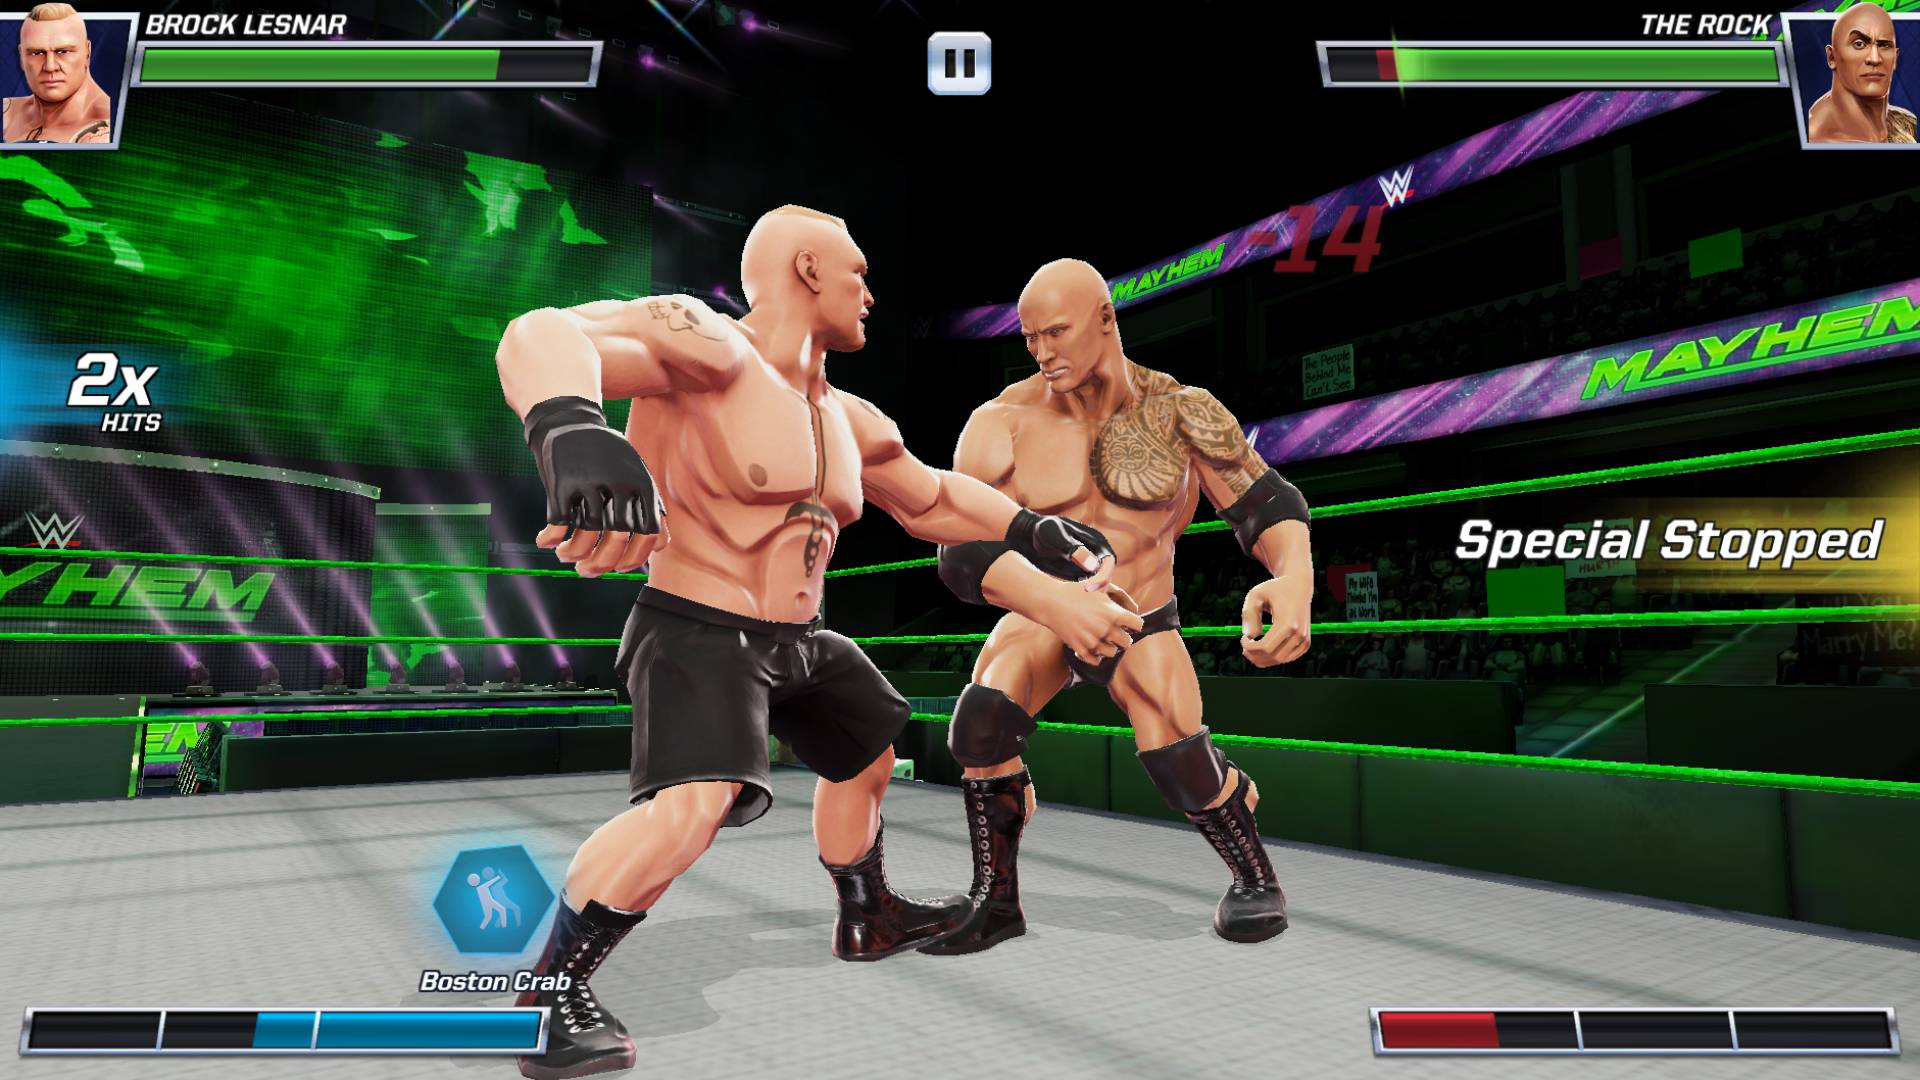 Top 5 Best Wrestling Games for Android 2021